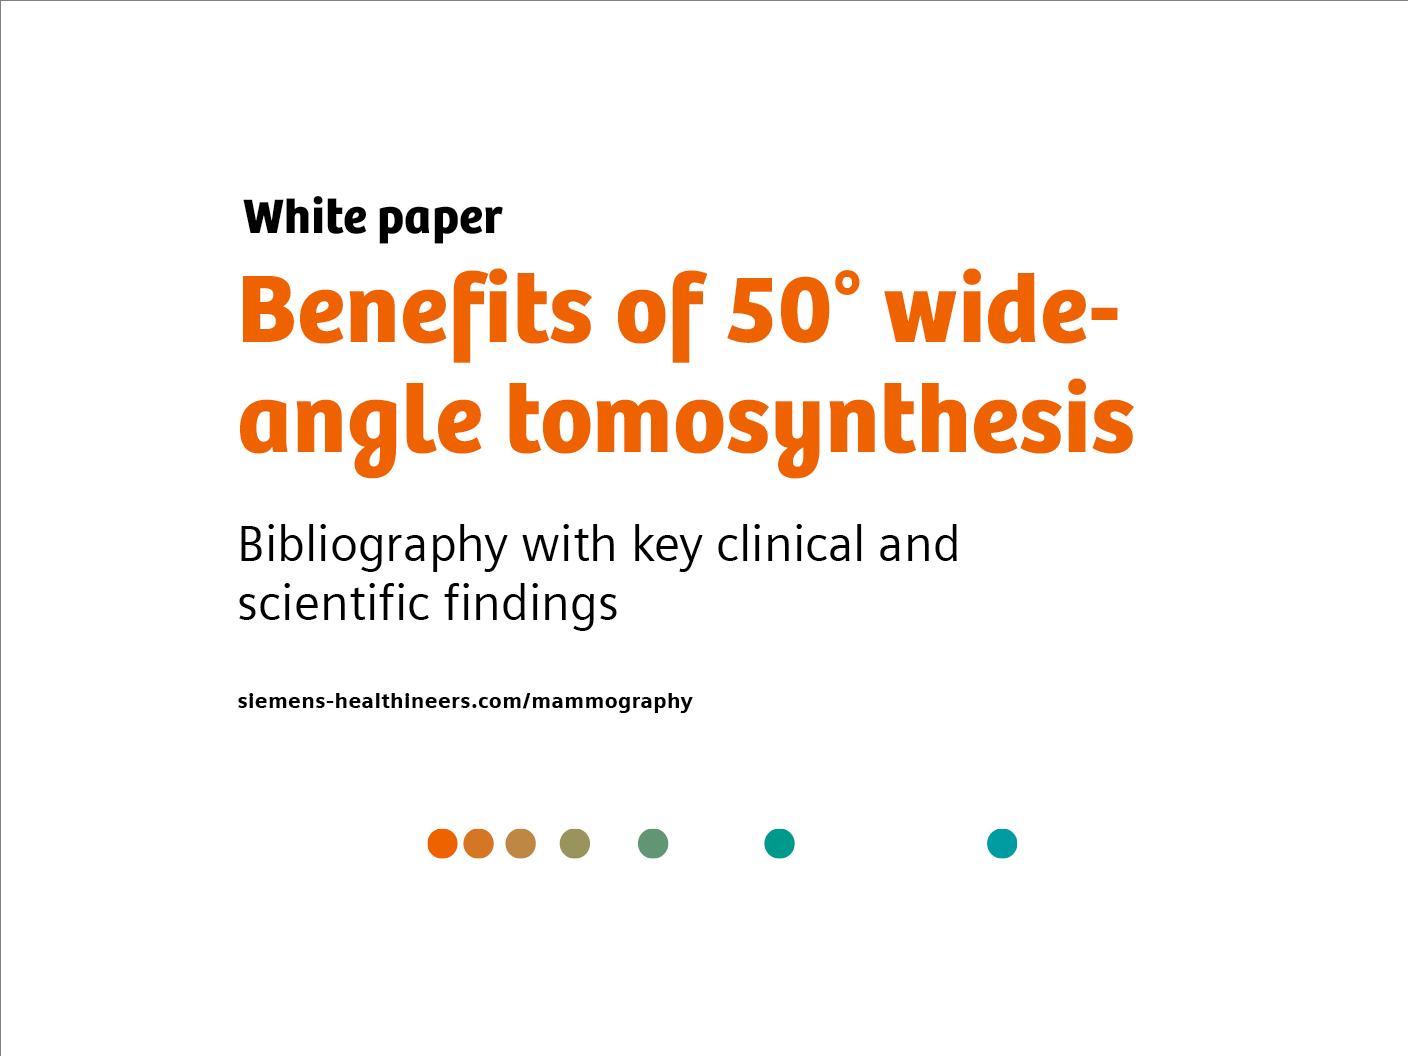 Benefits of 50° wide-angle tomosynthesis - Bibliography with key clinical and scientific findings